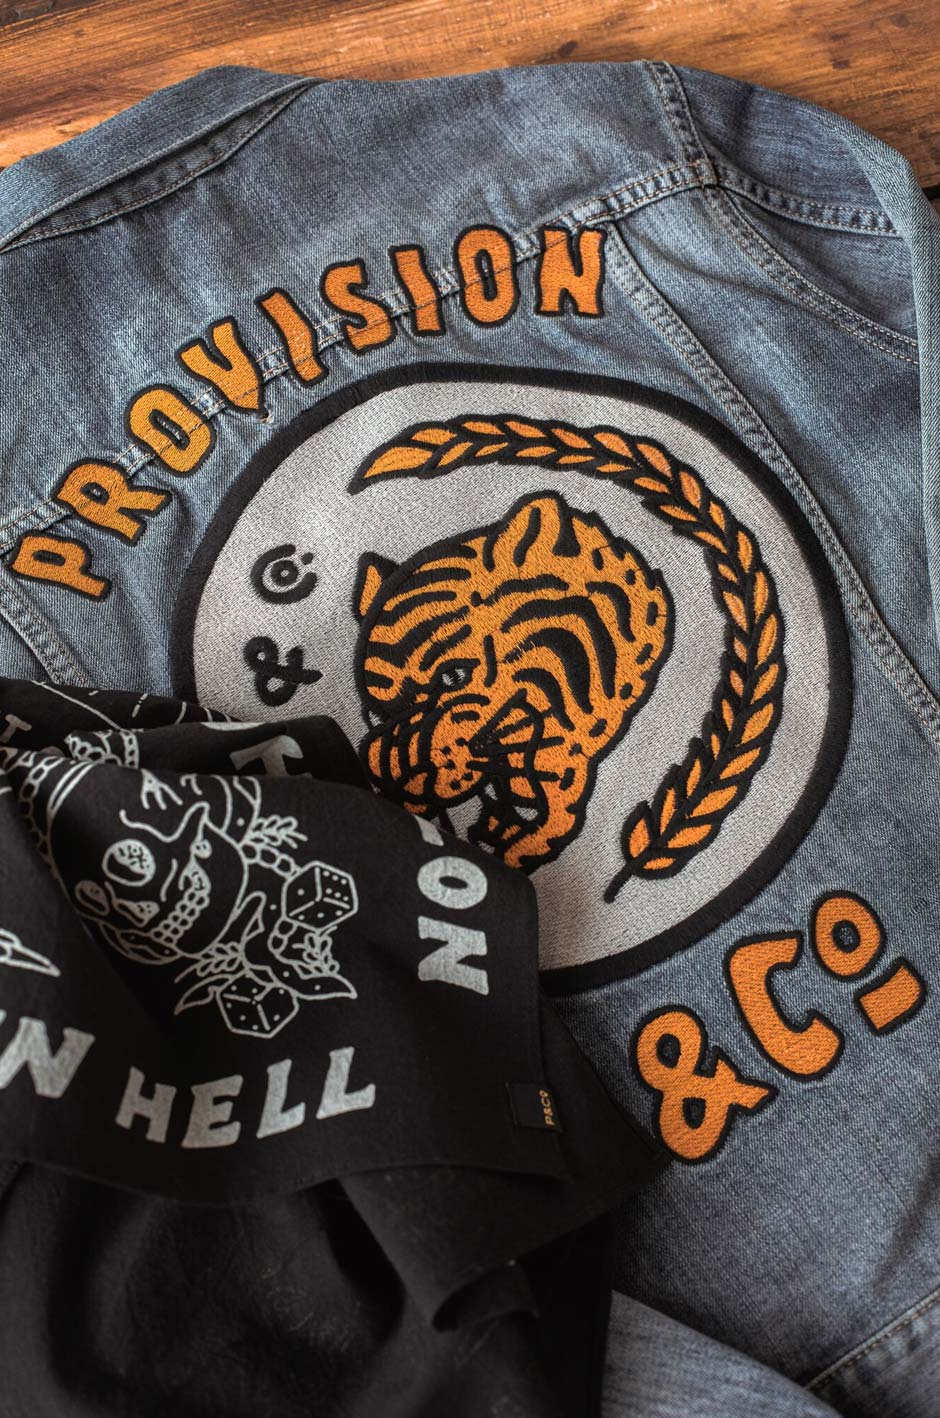 Provision & Co (P&Co) - The Provision Tiger Jacket